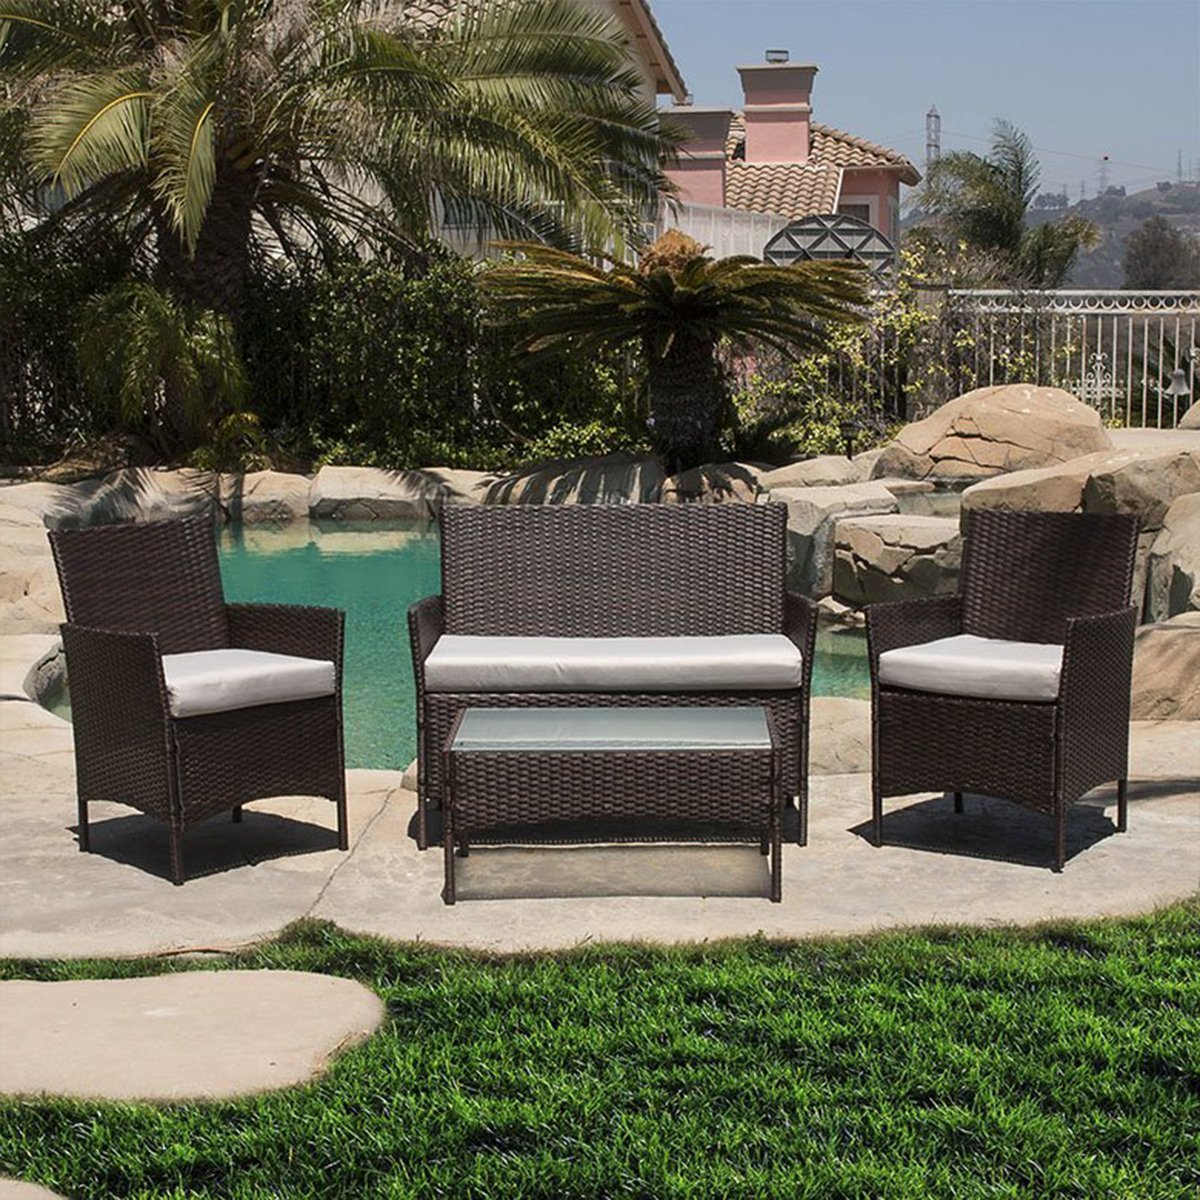 Outdoor Patio Furniture Set Cushioned 4 Pieces Wicker Patio Set Table, Two Chairs and a Sofa Brown Finish with Light Khaki Cushions Outdoor Furniture Lawn Rattan Garden Set